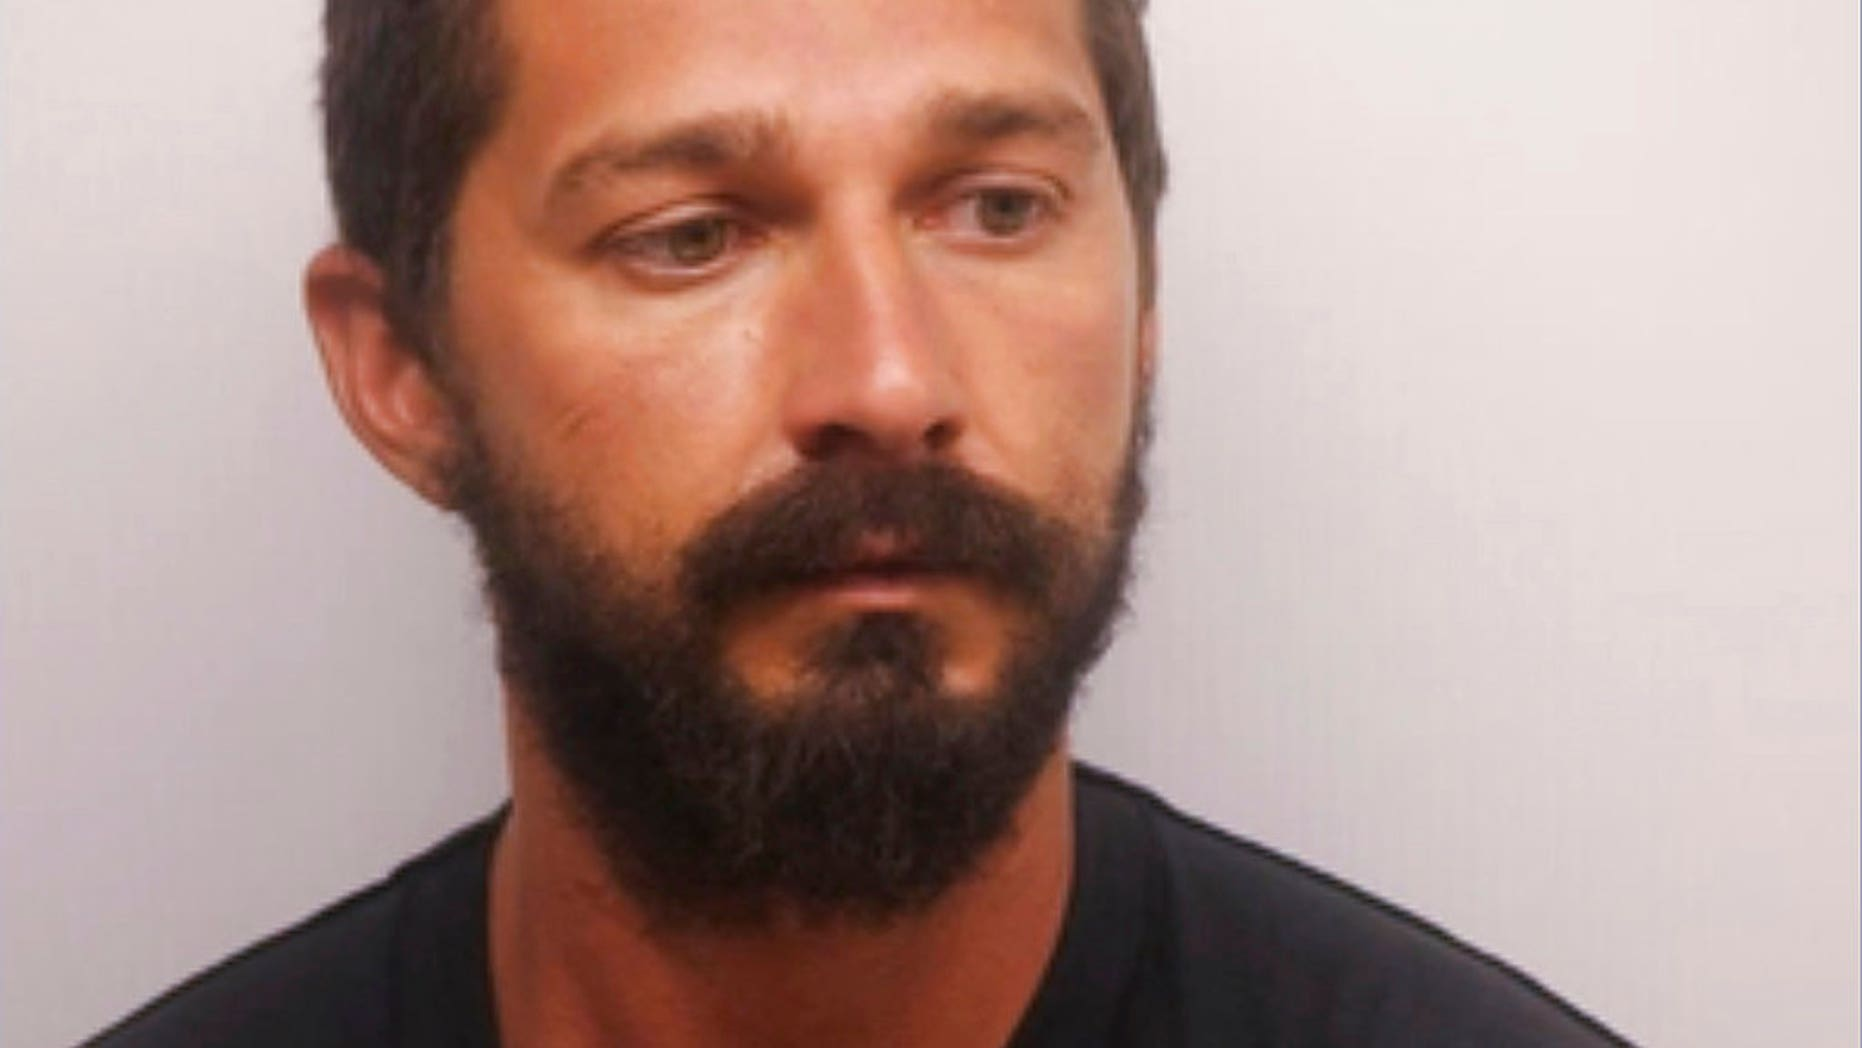 Shia LaBeouf is apologizing after shouting profanity-laced racial remarks during his arrest in Georgia.